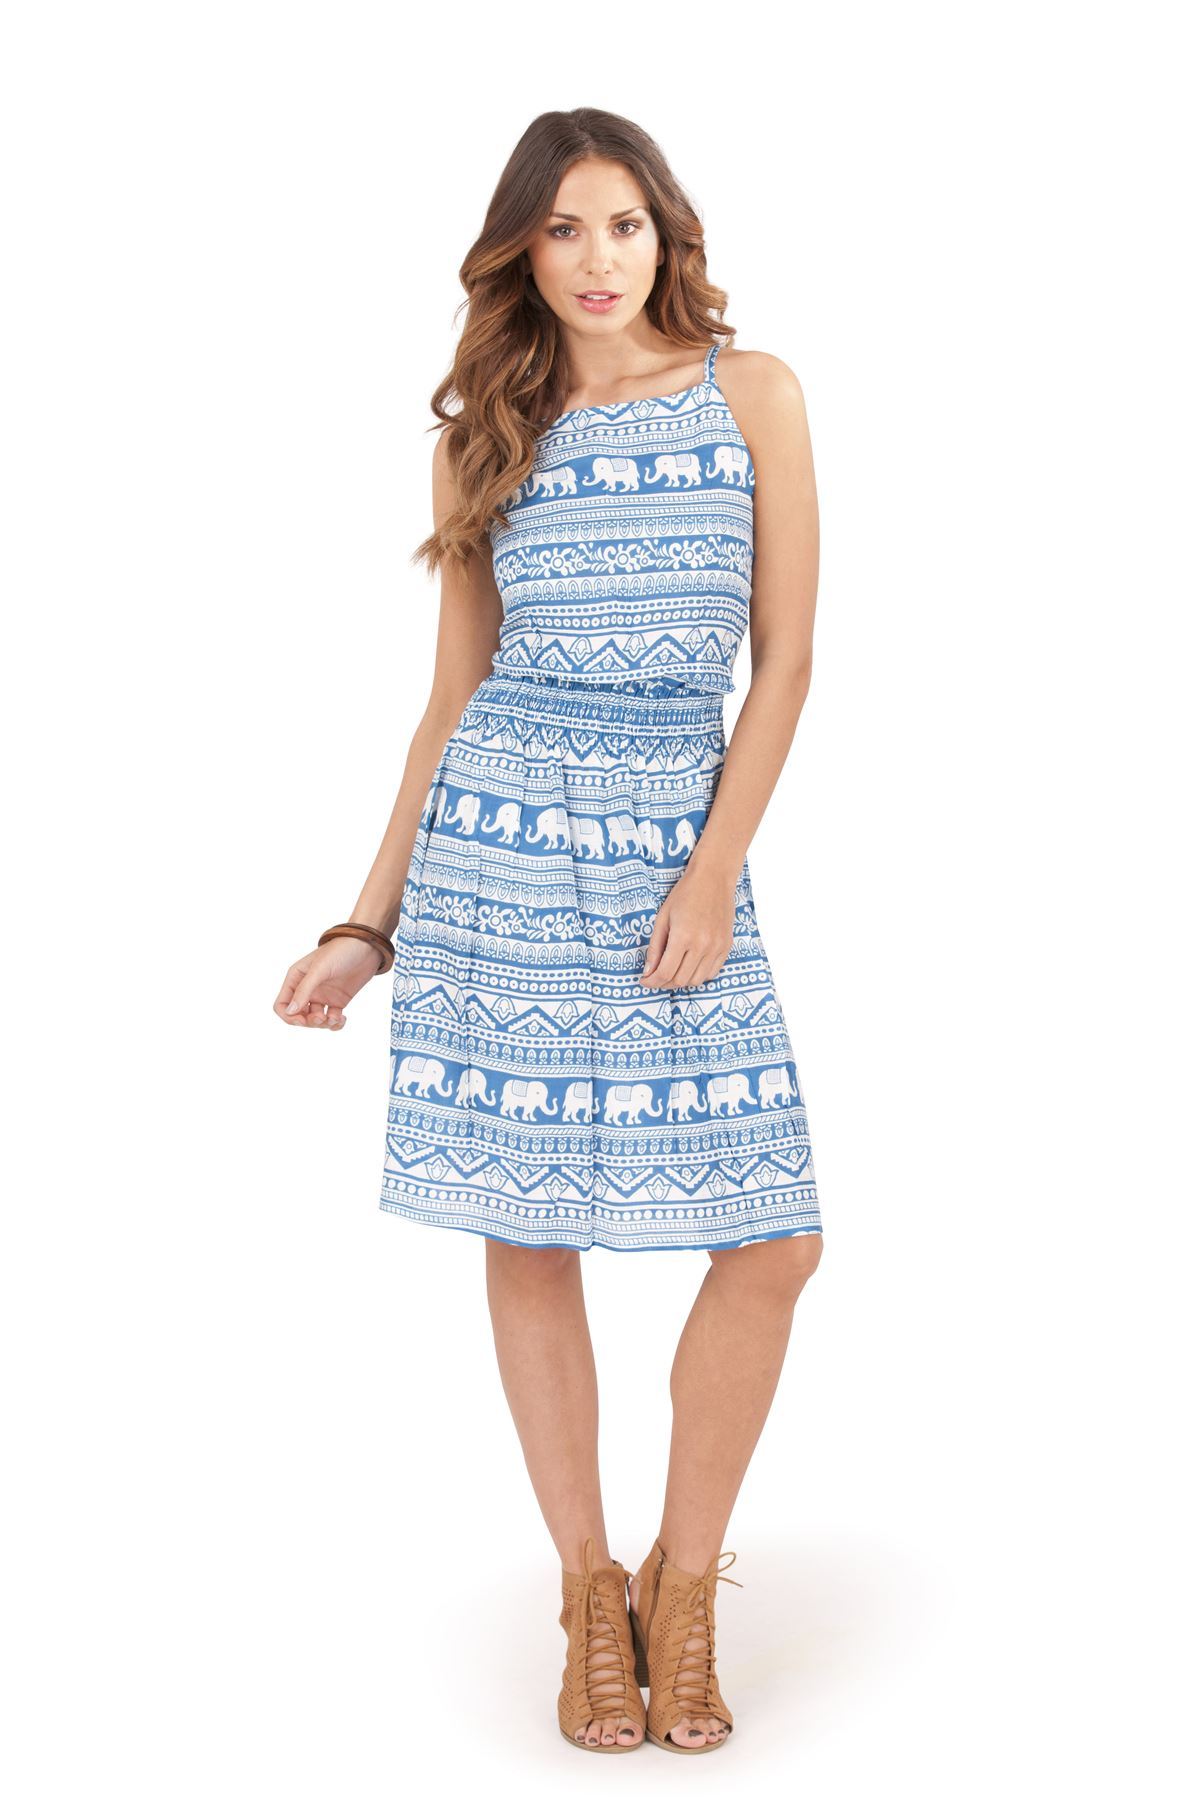 Shop casual, semi-formal, and formal dress brands at Zappos!